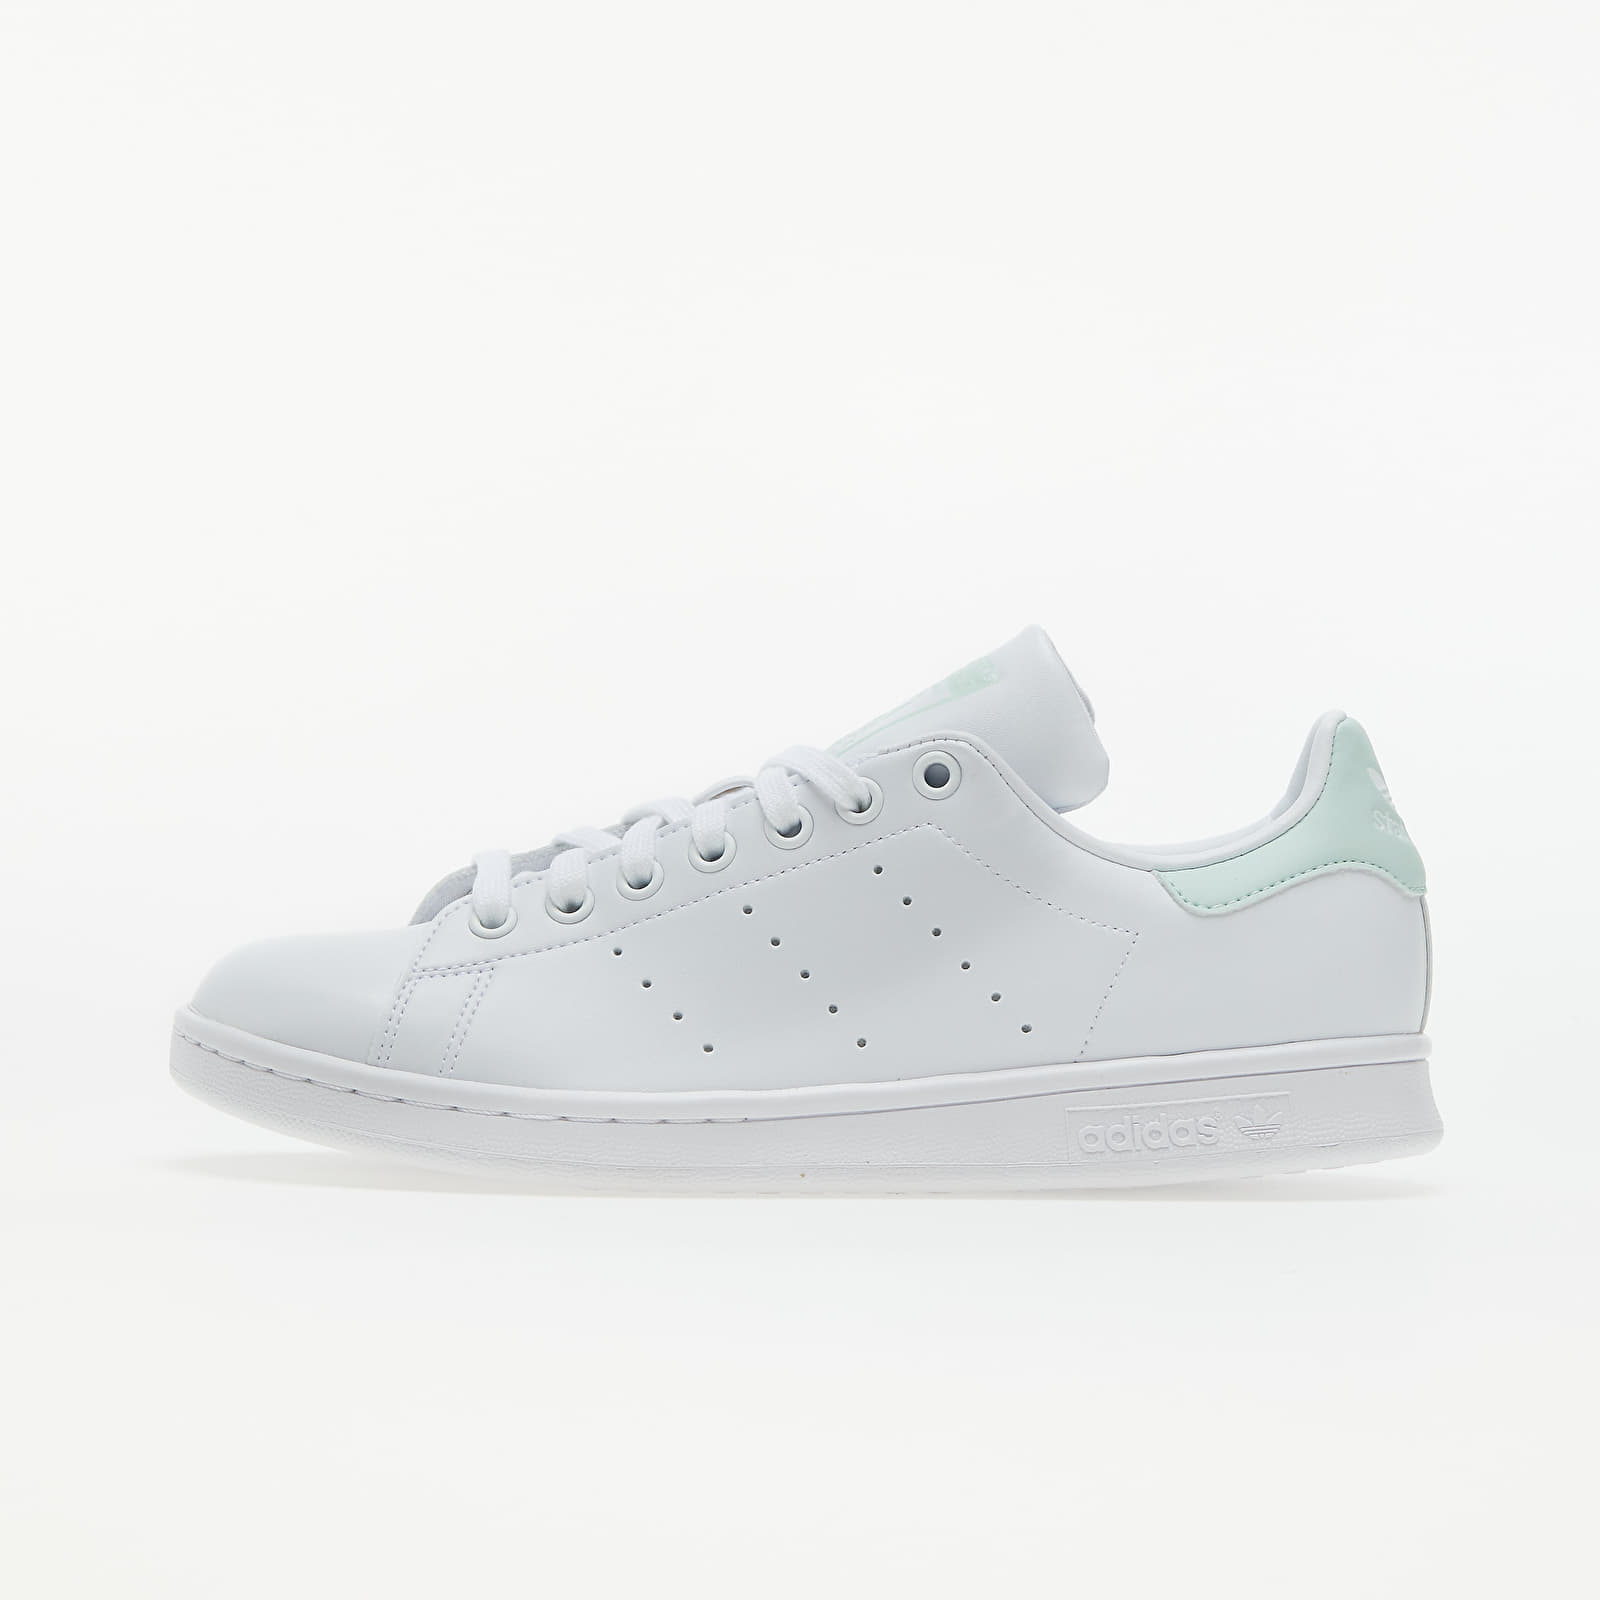 adidas Stan Smith W Ftw White/ Dash Green/ Core Black EUR 40